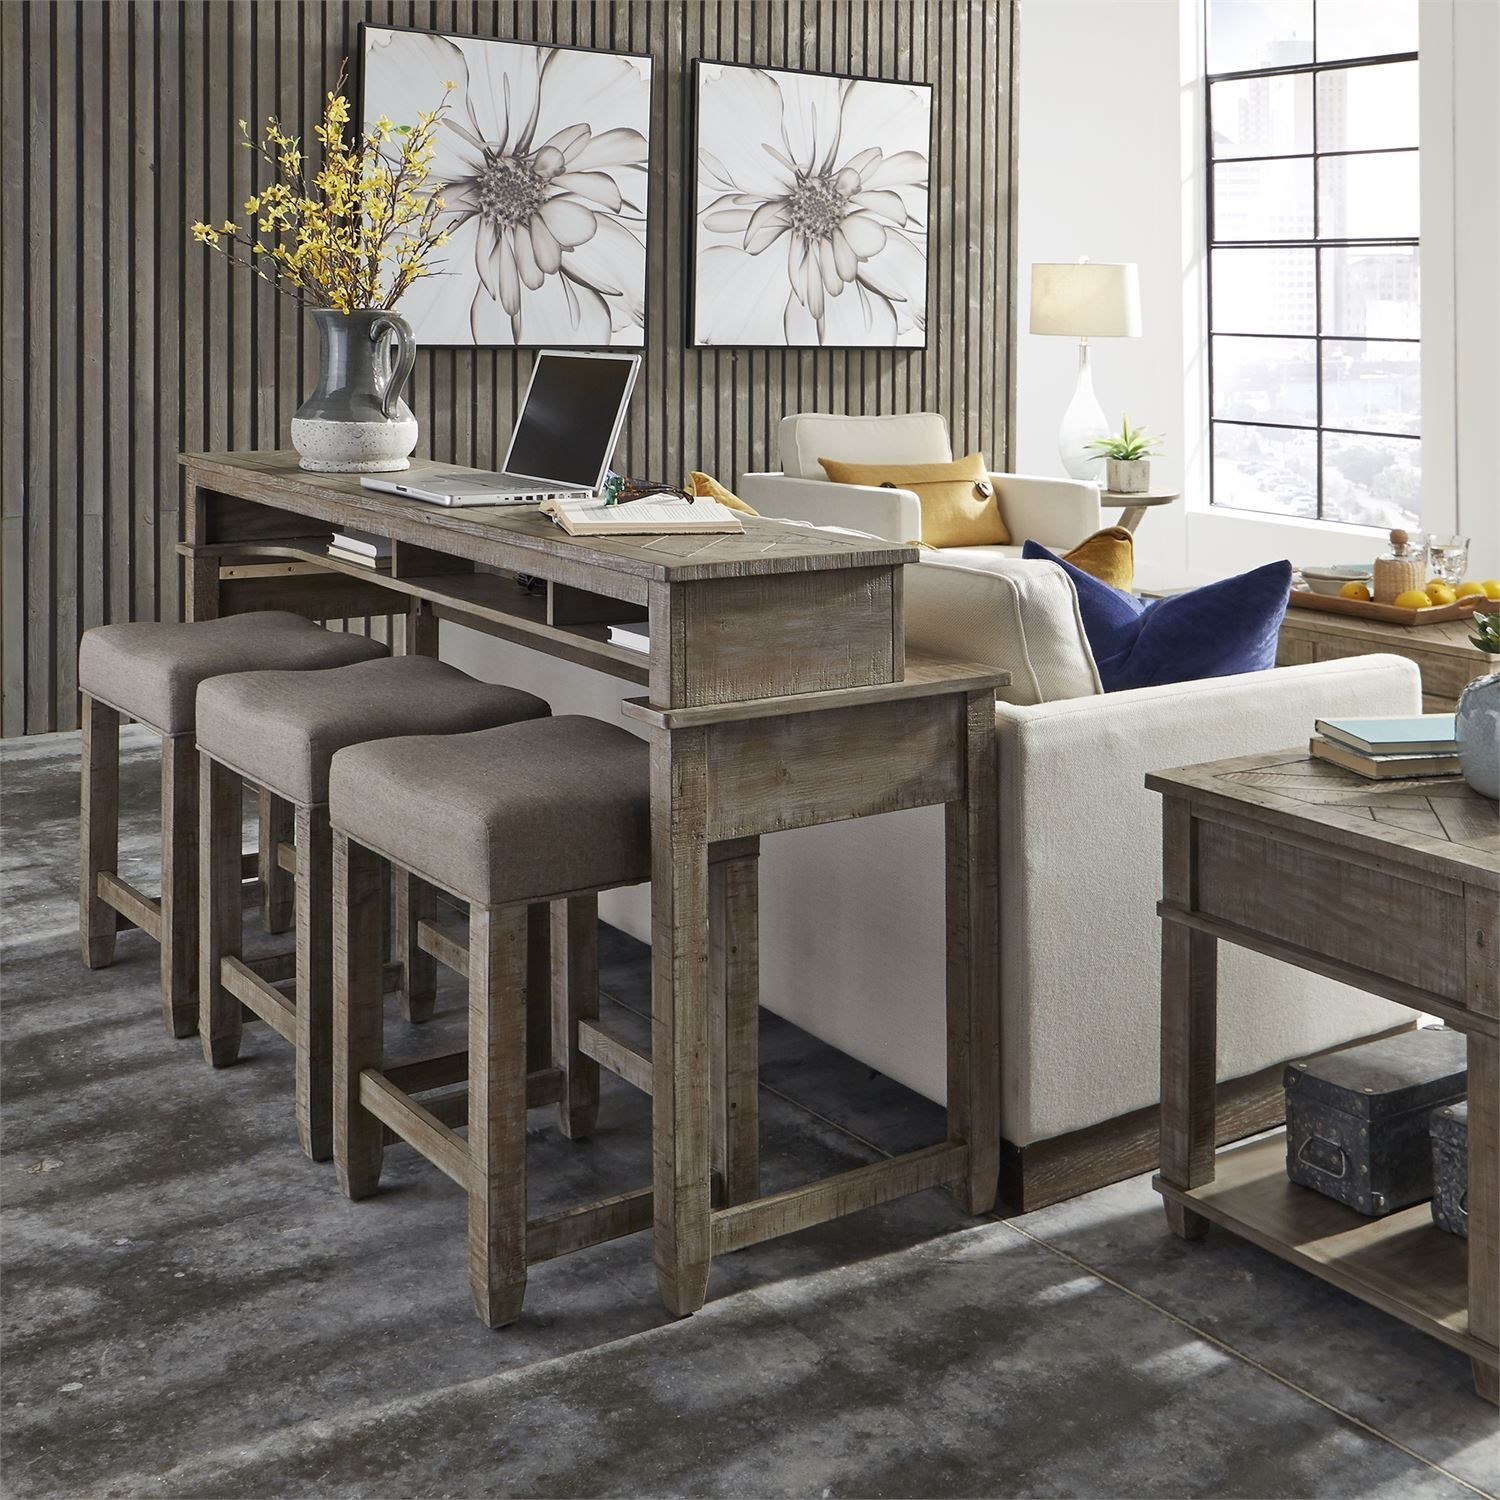 Parkland Falls 4 Piece Bar and Stool Set by Libby at Walker's Furniture